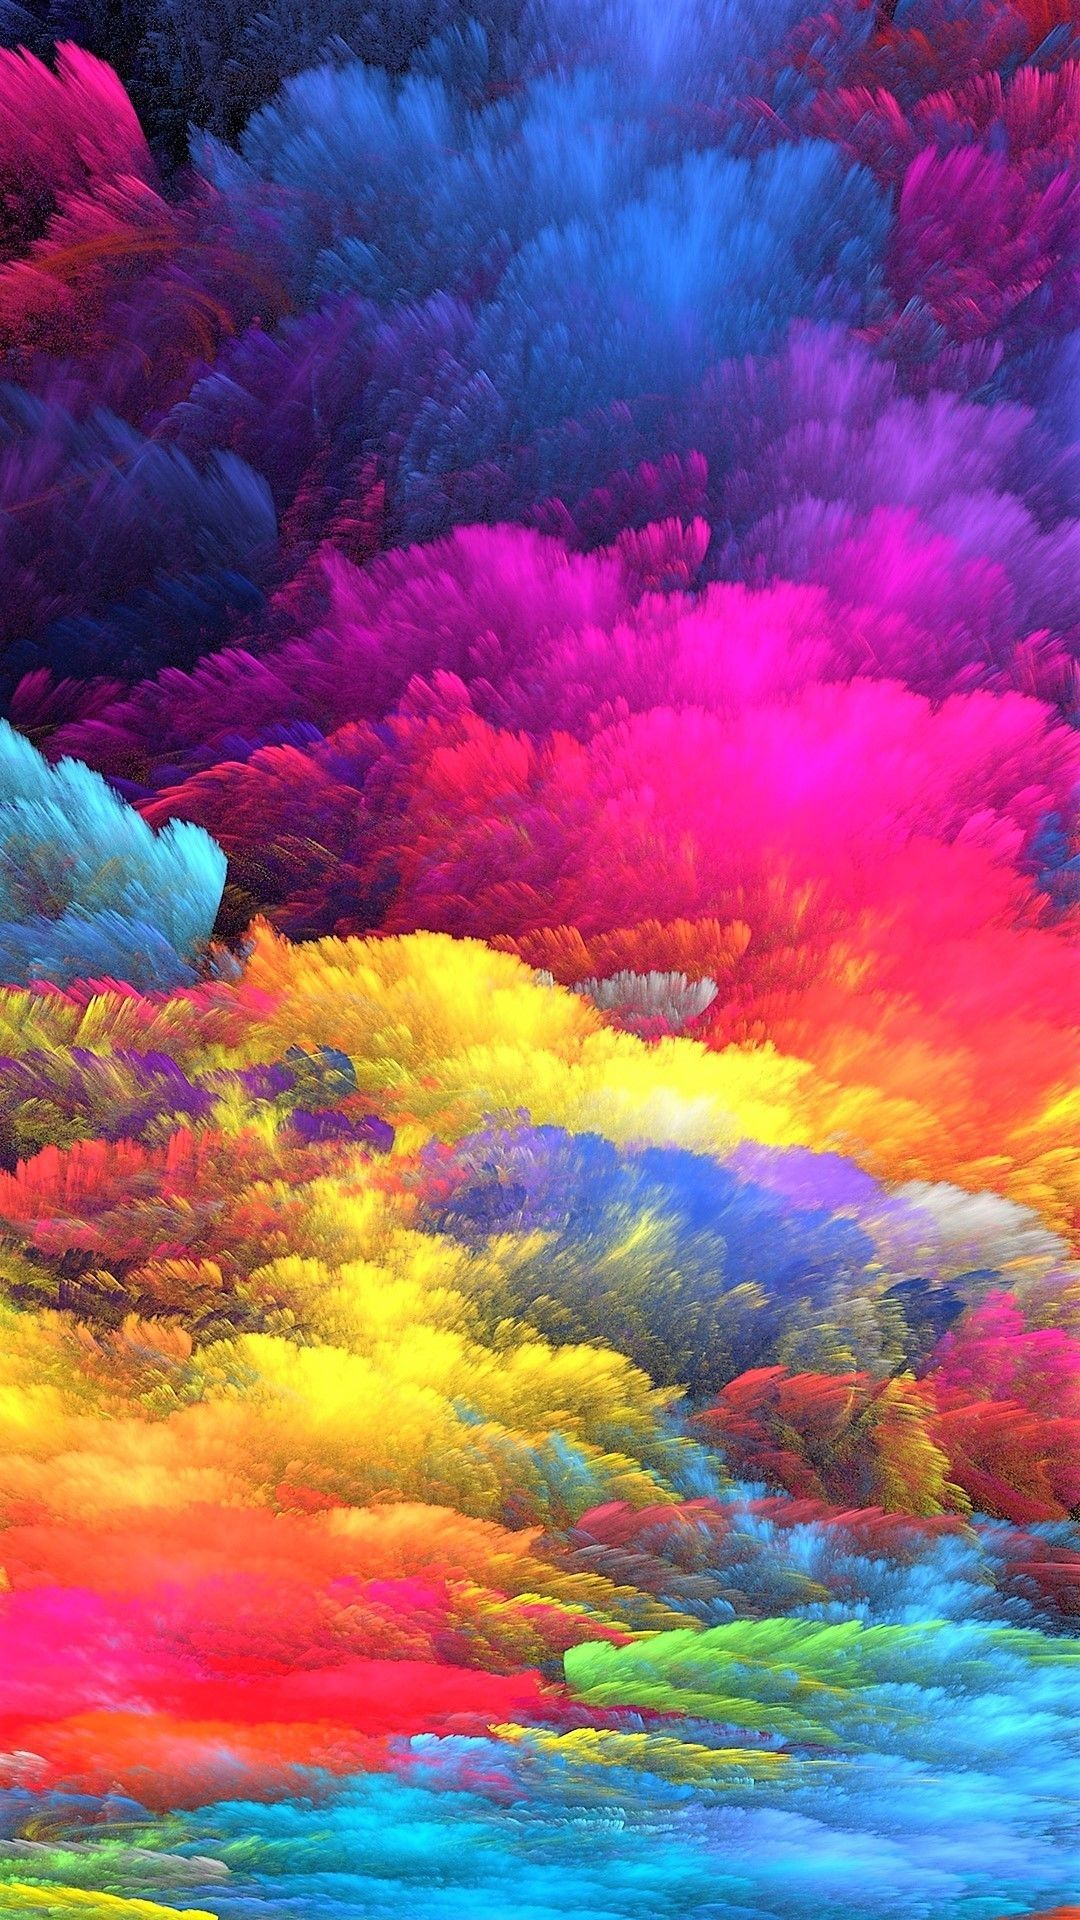 59 Color Explosion Wallpapers On Wallpaperplay   Data-src - Colorful Wallpaper Iphone - HD Wallpaper